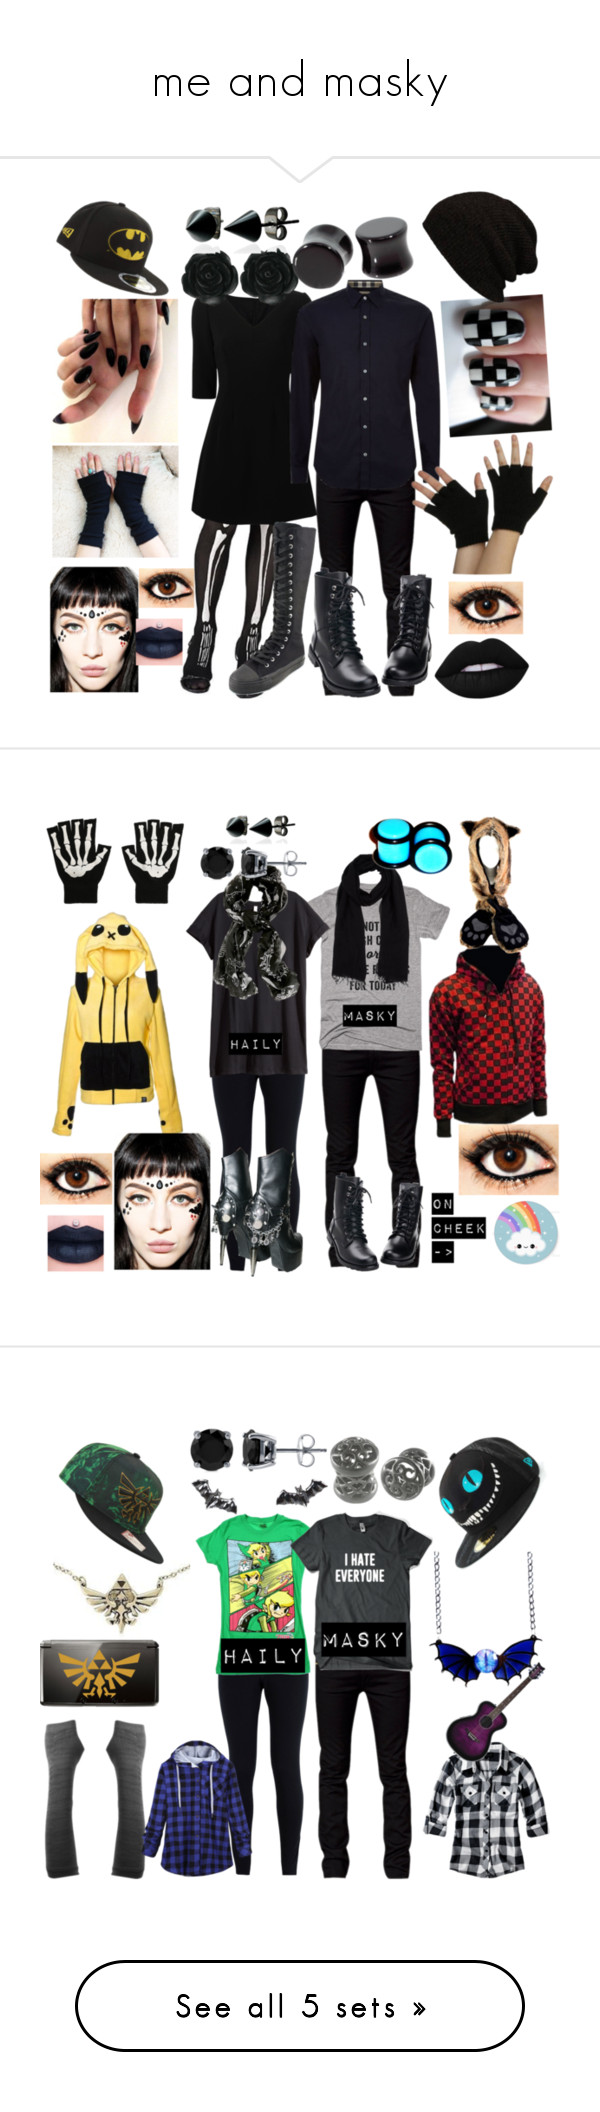 """me and masky"" by newmotionlessjinxxgamer ❤ liked on Polyvore featuring Disguise, Dolce&Gabbana, Demonia, Tiger of Sweden, Burberry, Wicked Hippie, Jeffree Star, Lime Crime, New Era and Dollydagger"